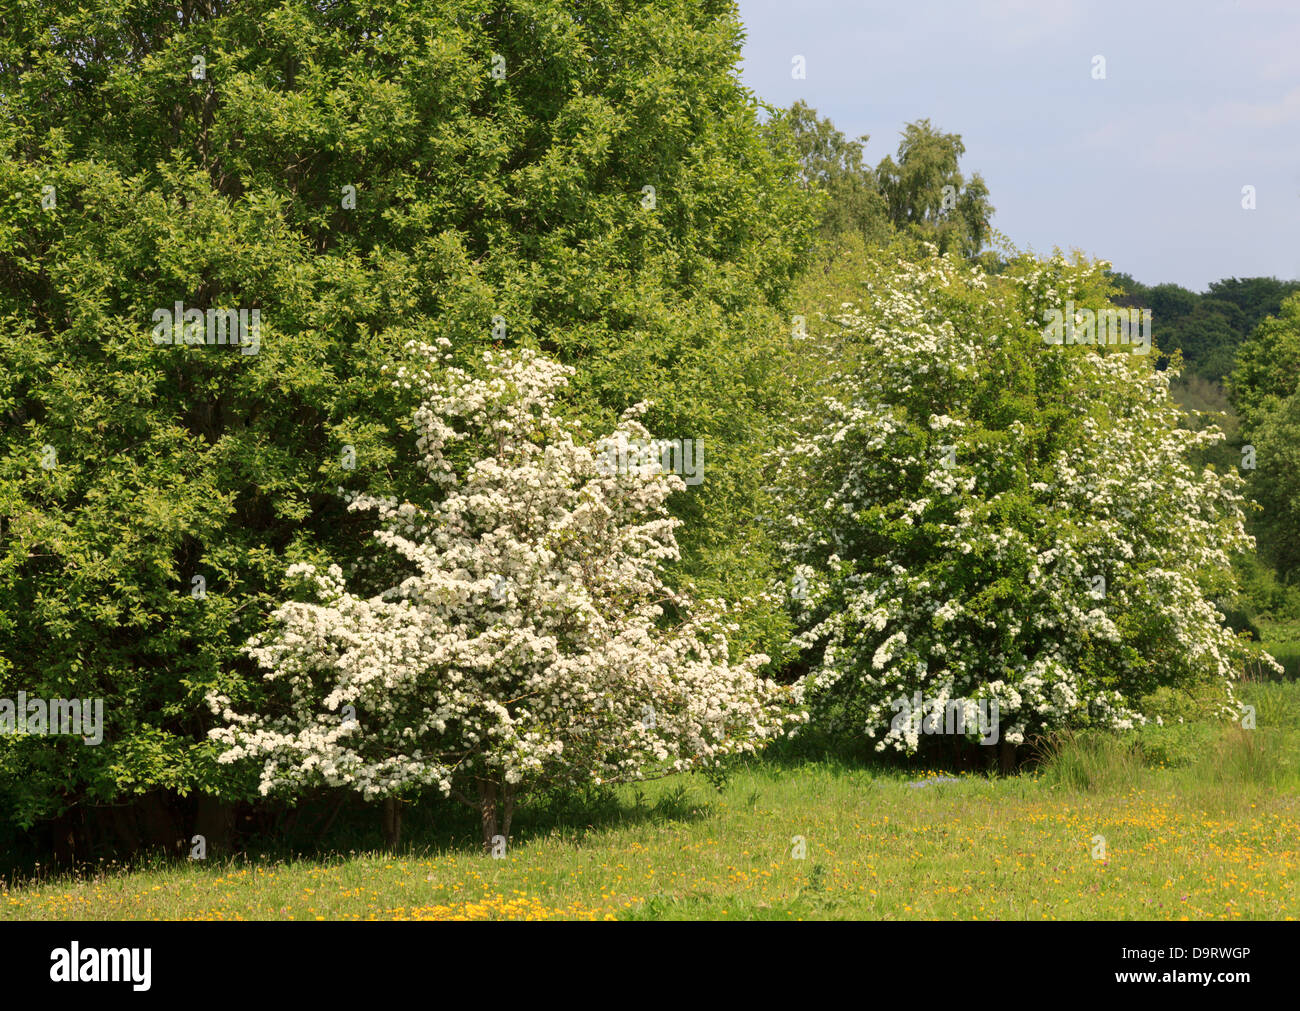 Hawthorn in blossom at Alyn Waters Country Park, Wrexham - Stock Image